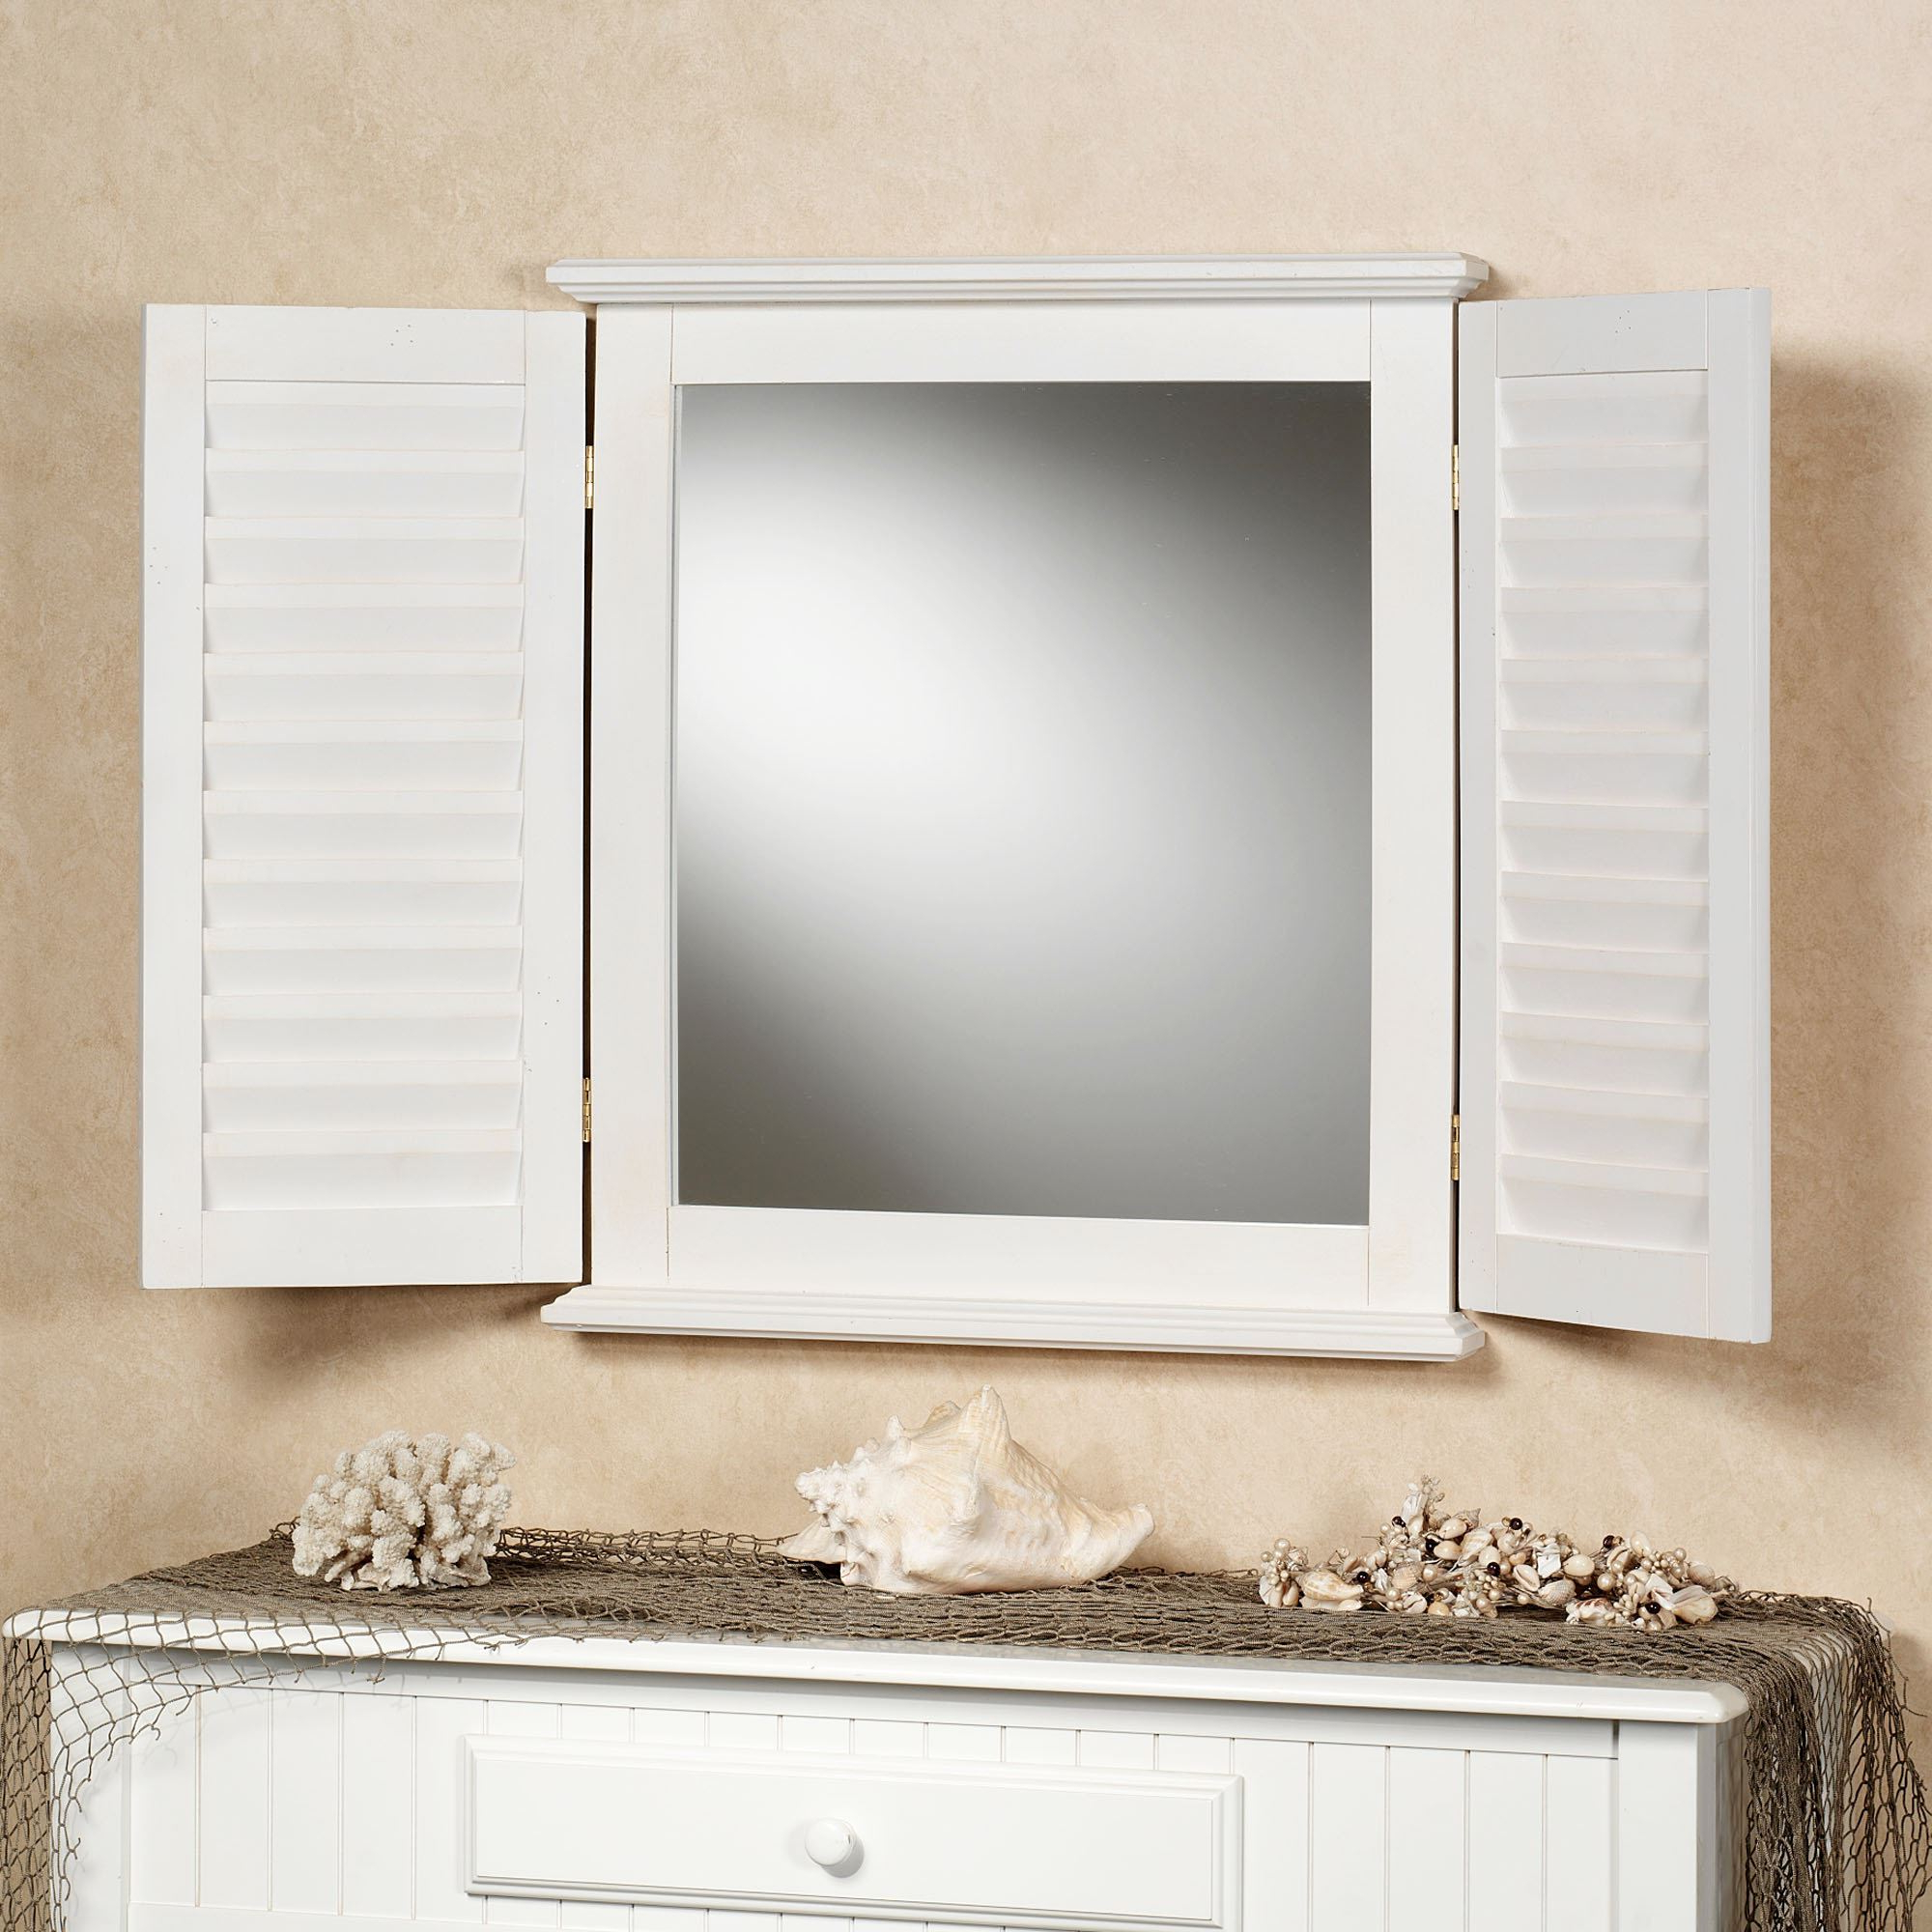 Widely Used Arched Mirror With Shutters – Mirror Ideas With Regard To Wall Mirrors With Shutters (View 1 of 20)